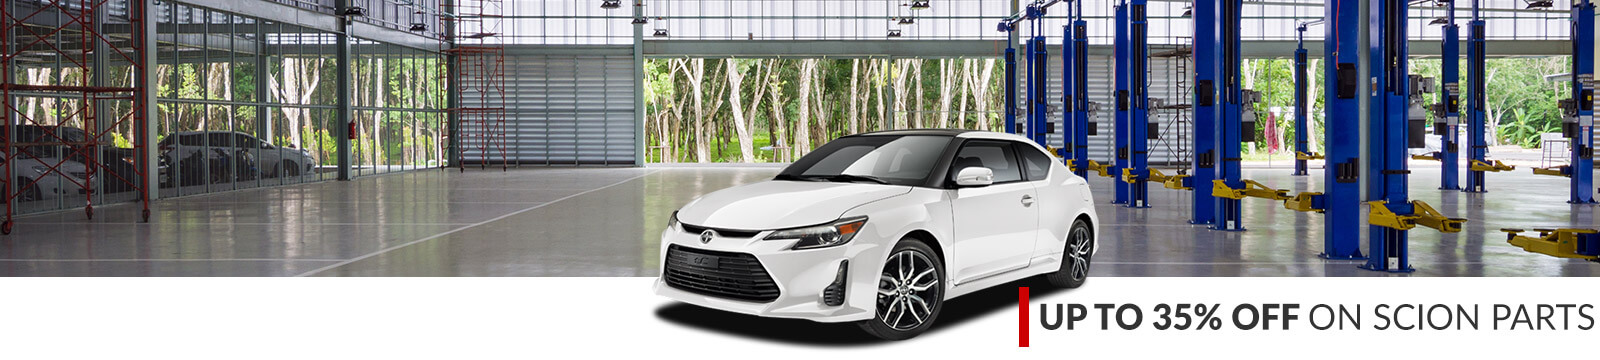 Scion discount parts